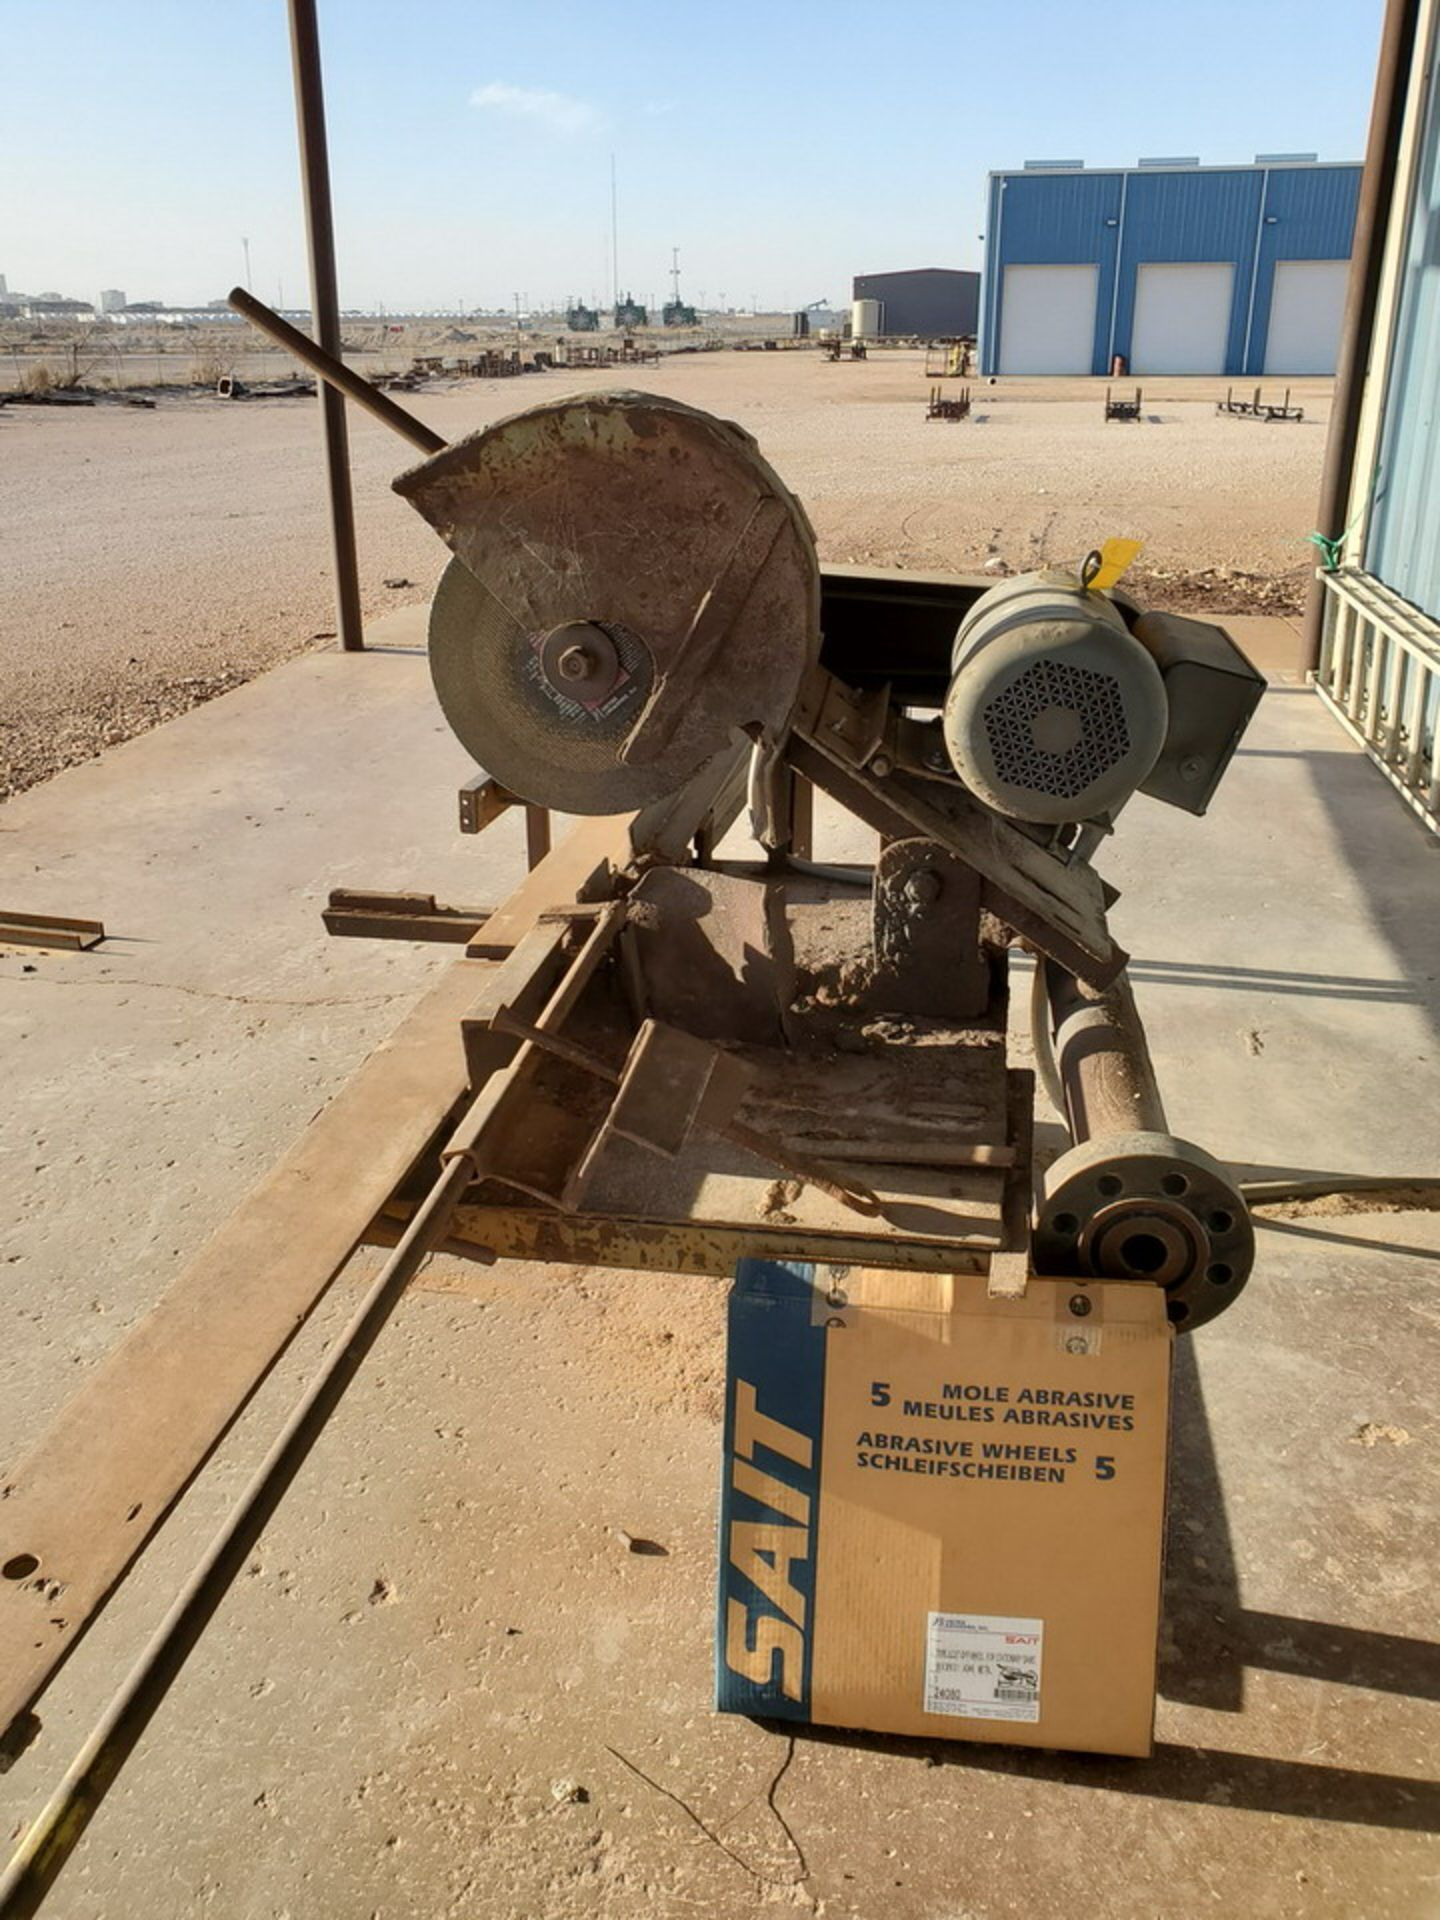 "18"" Chop Saw 10HP, 3450RPM, 230V, Baldor Motor; W/ Rolling Conveyor, 10' x 16-1/2"" - Image 3 of 11"